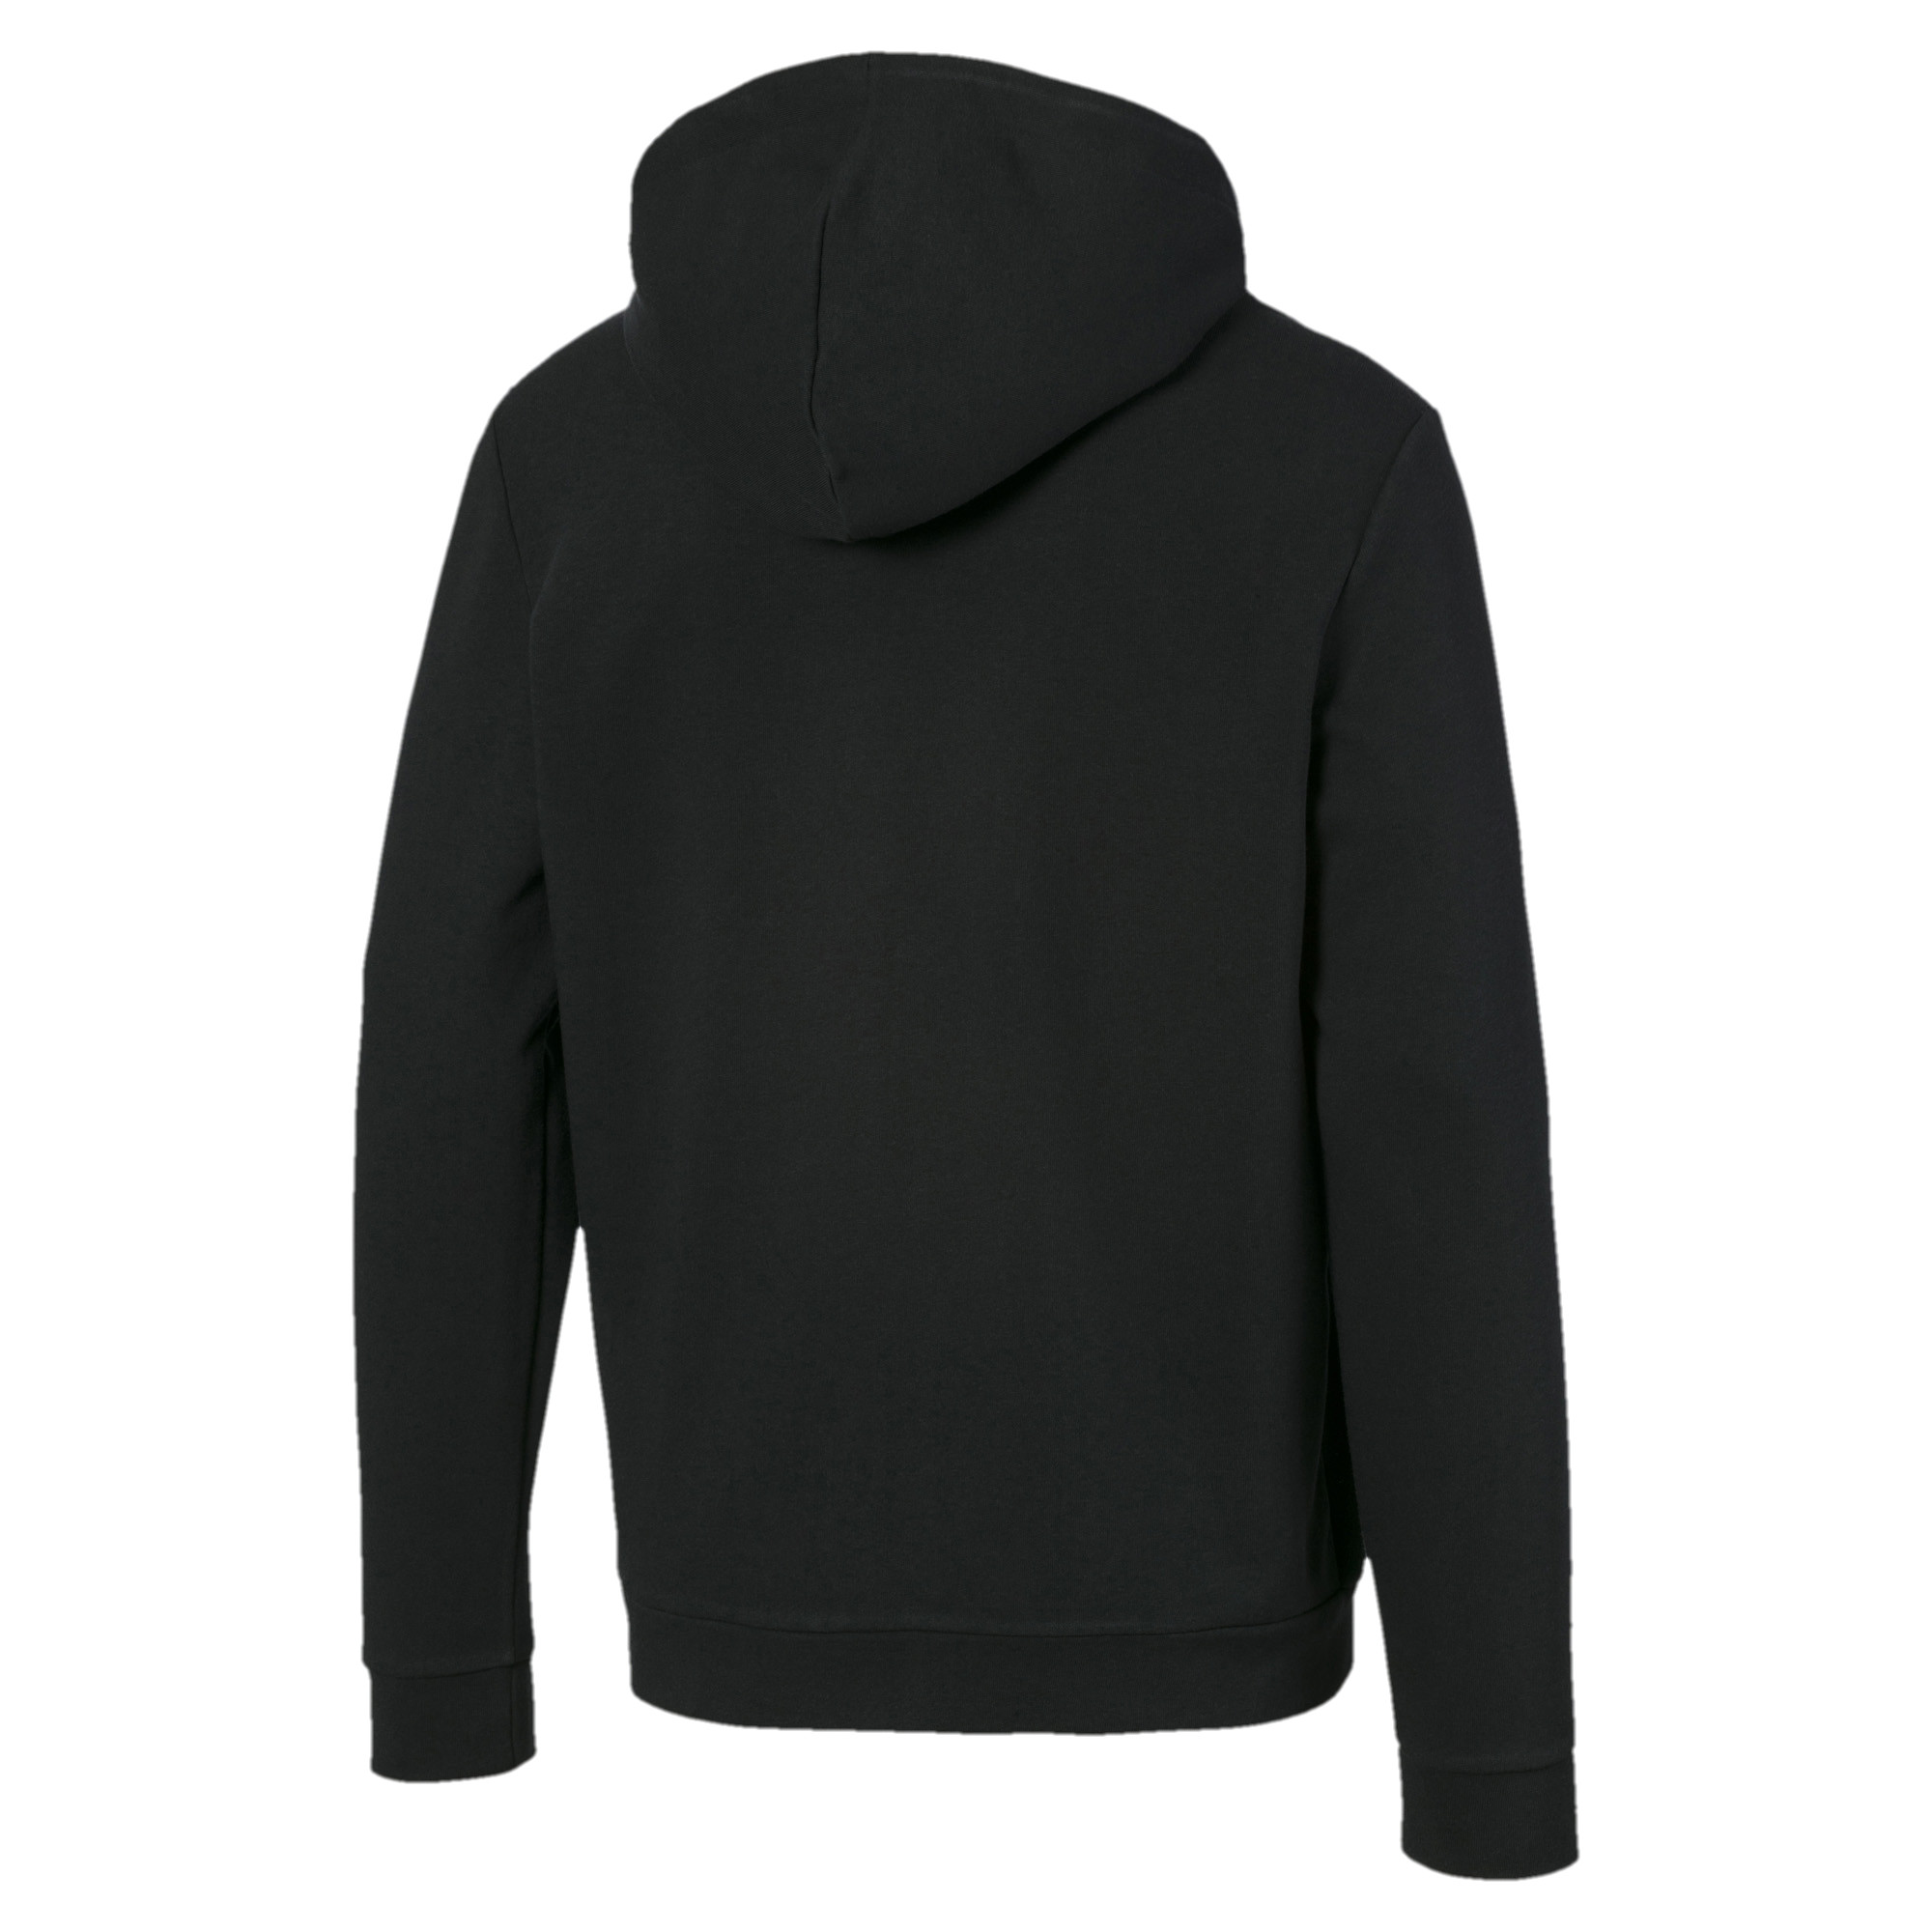 PUMA-Amplified-Men-039-s-Hooded-Jacket-Men-Sweat-Basics thumbnail 13